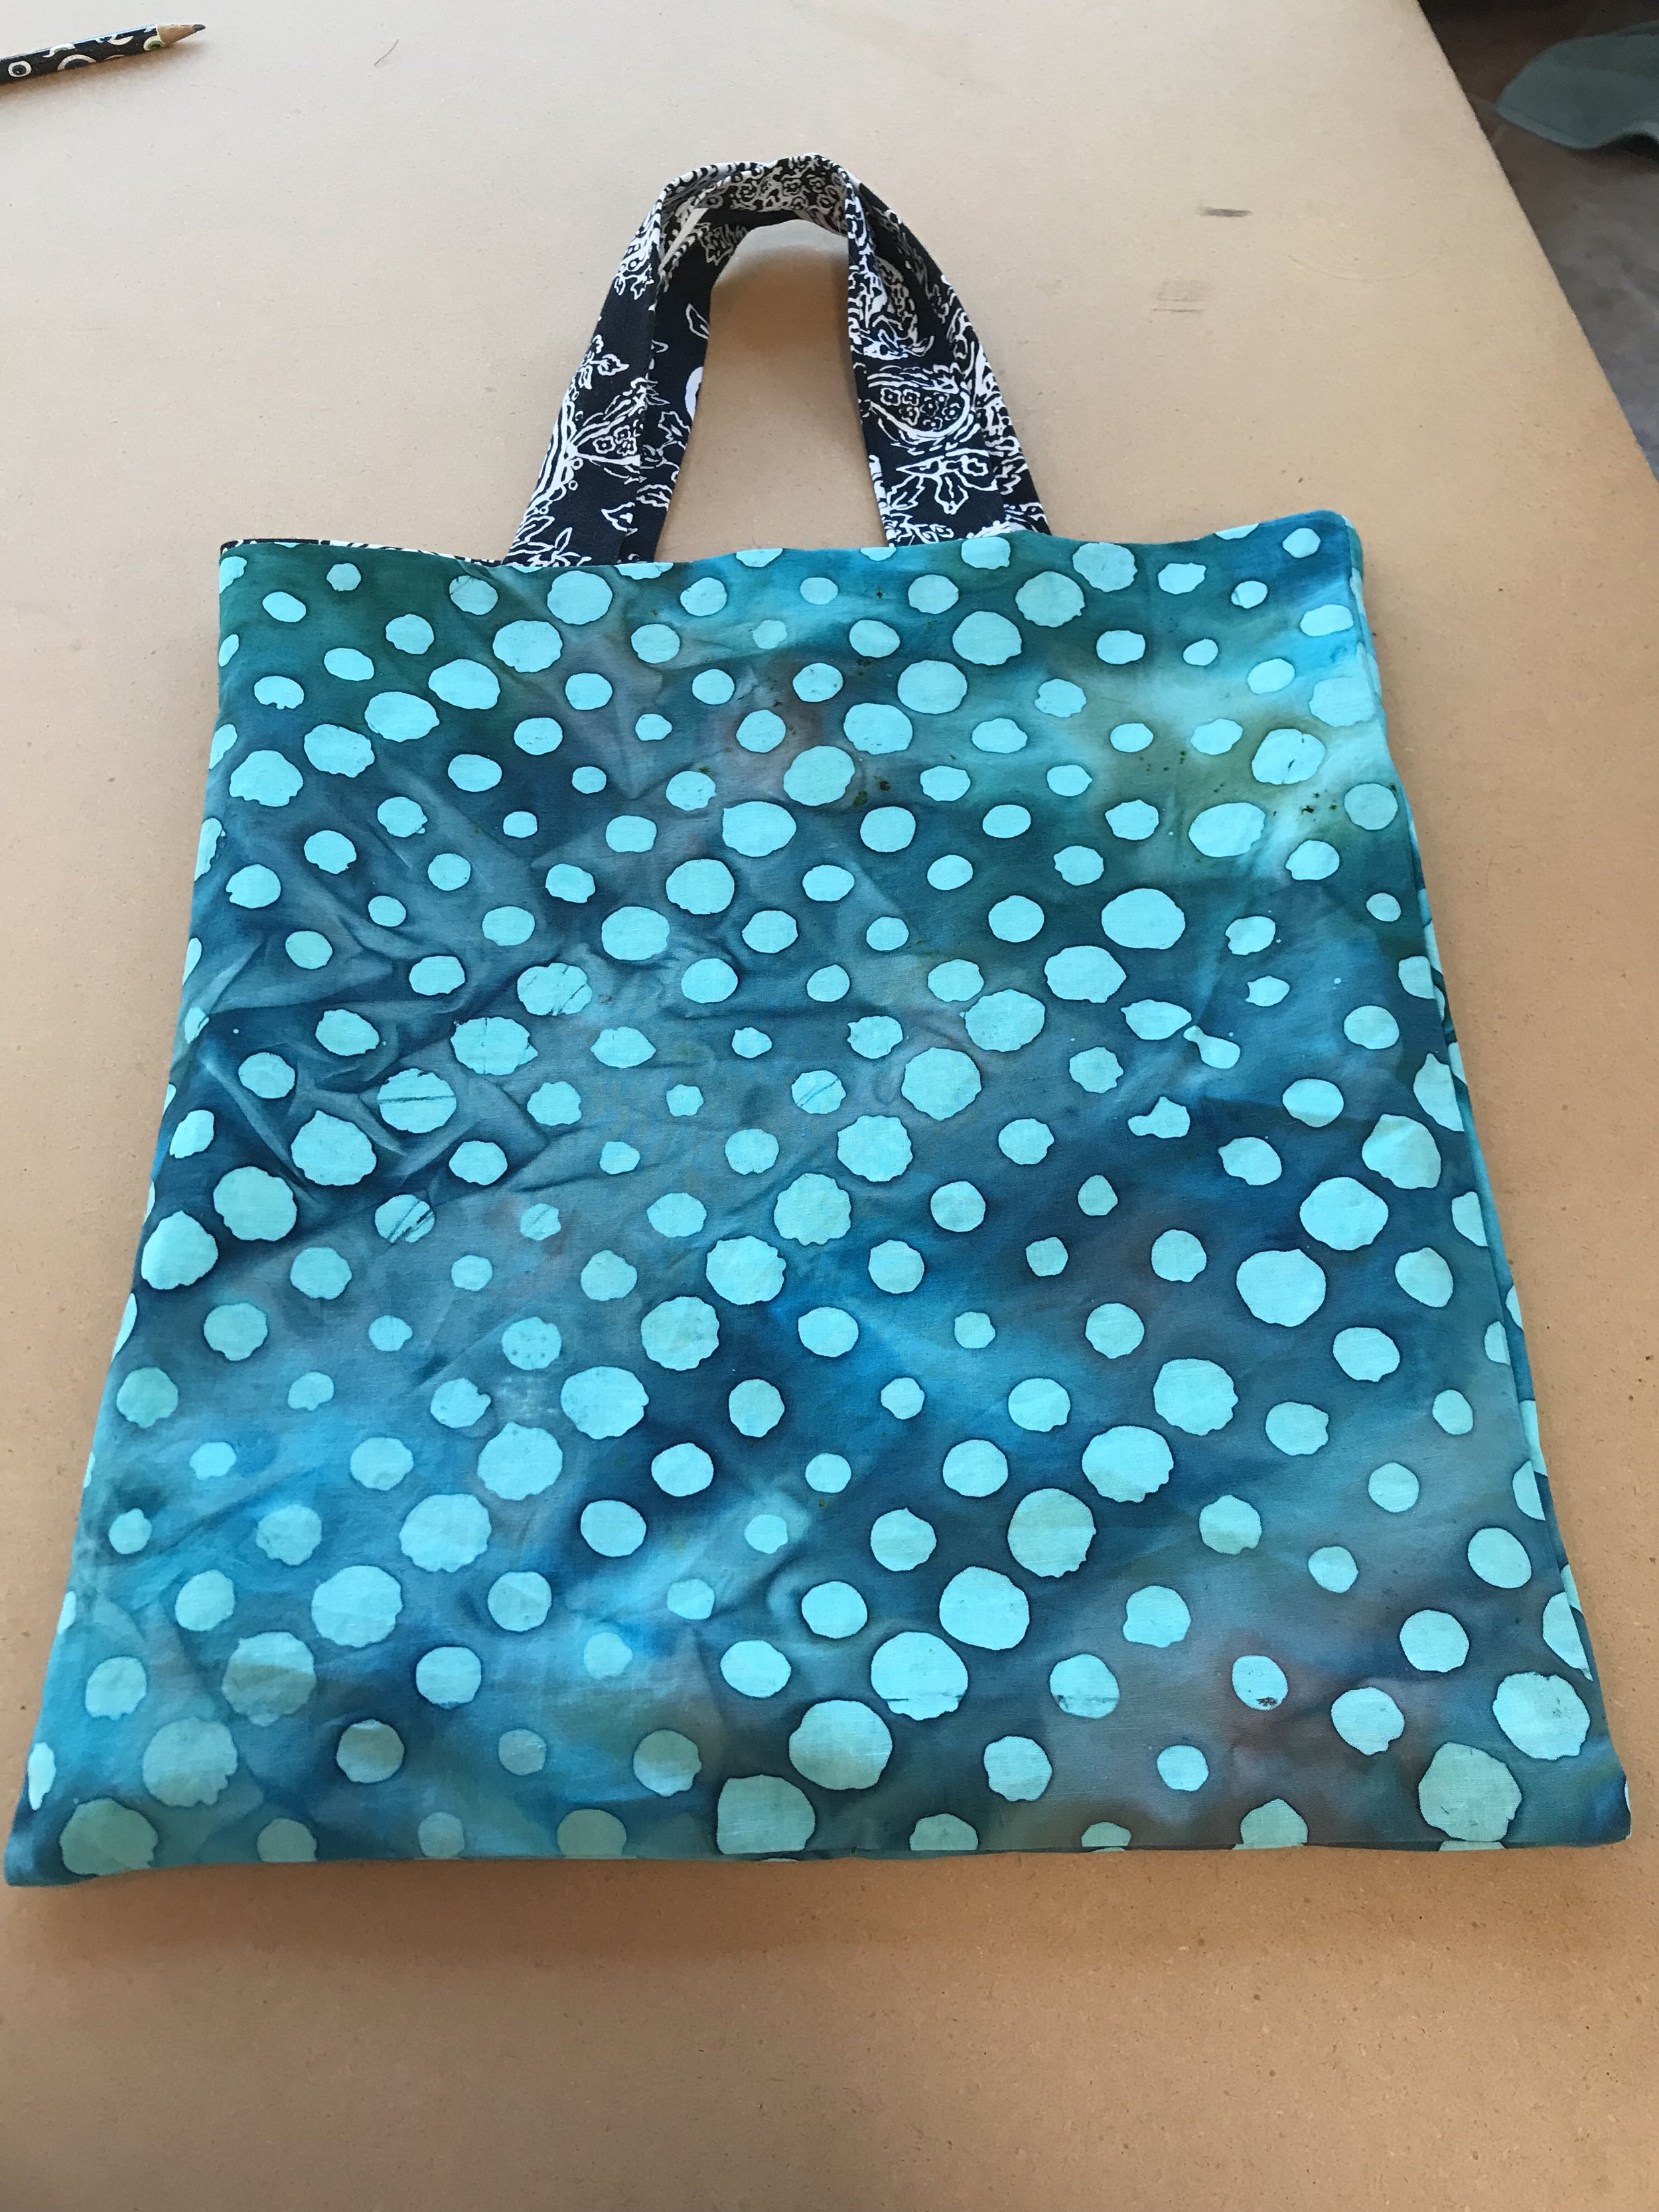 Lined tote bag finish